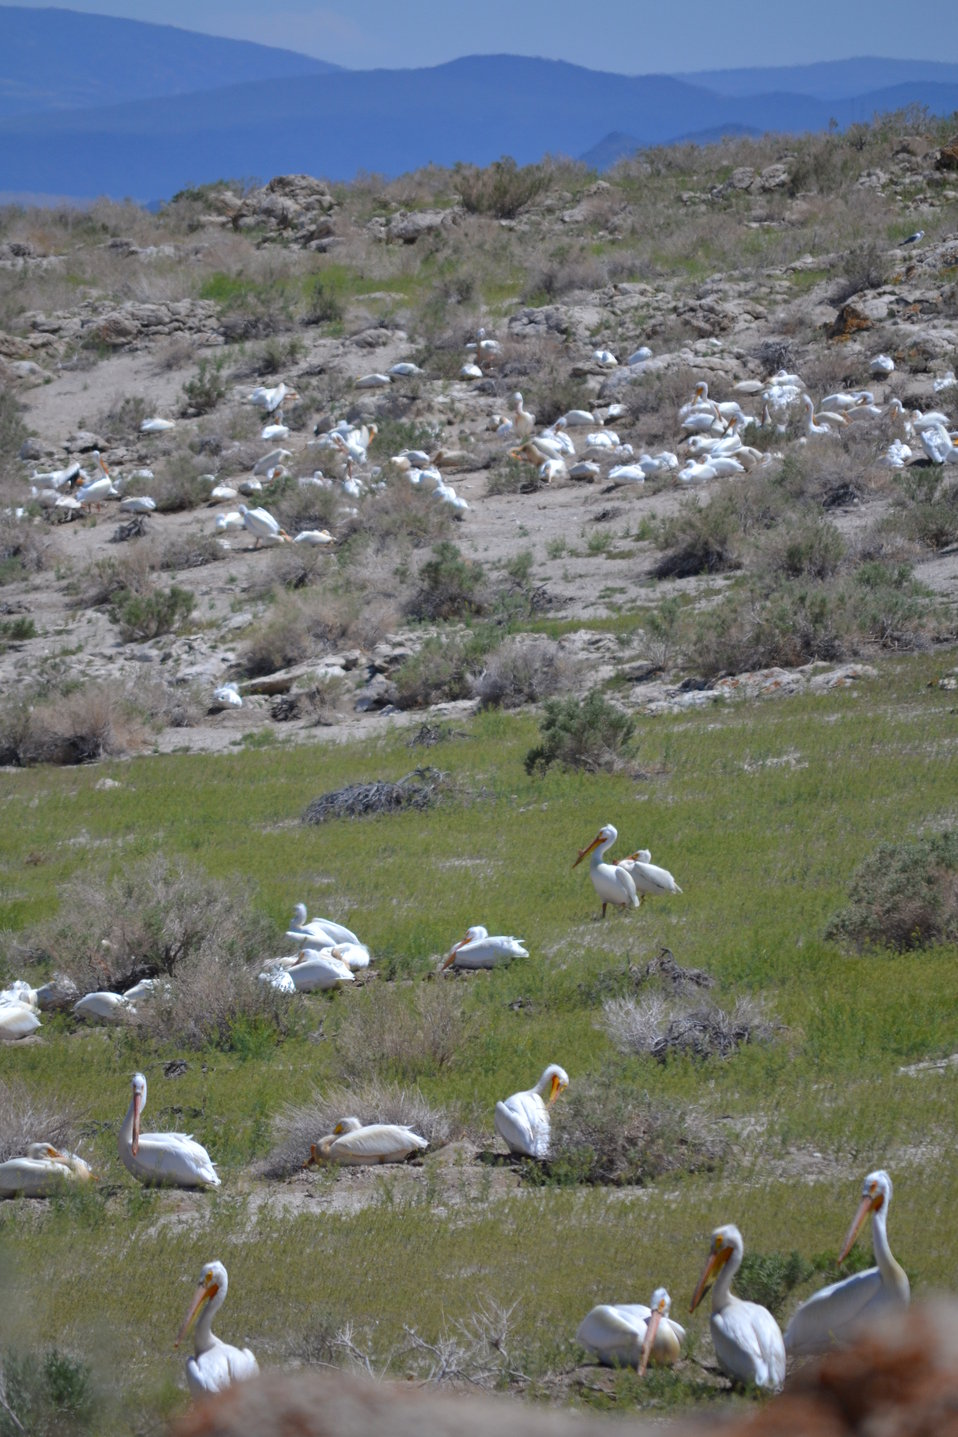 Nesting American white pelicans at Anaho Island NWR